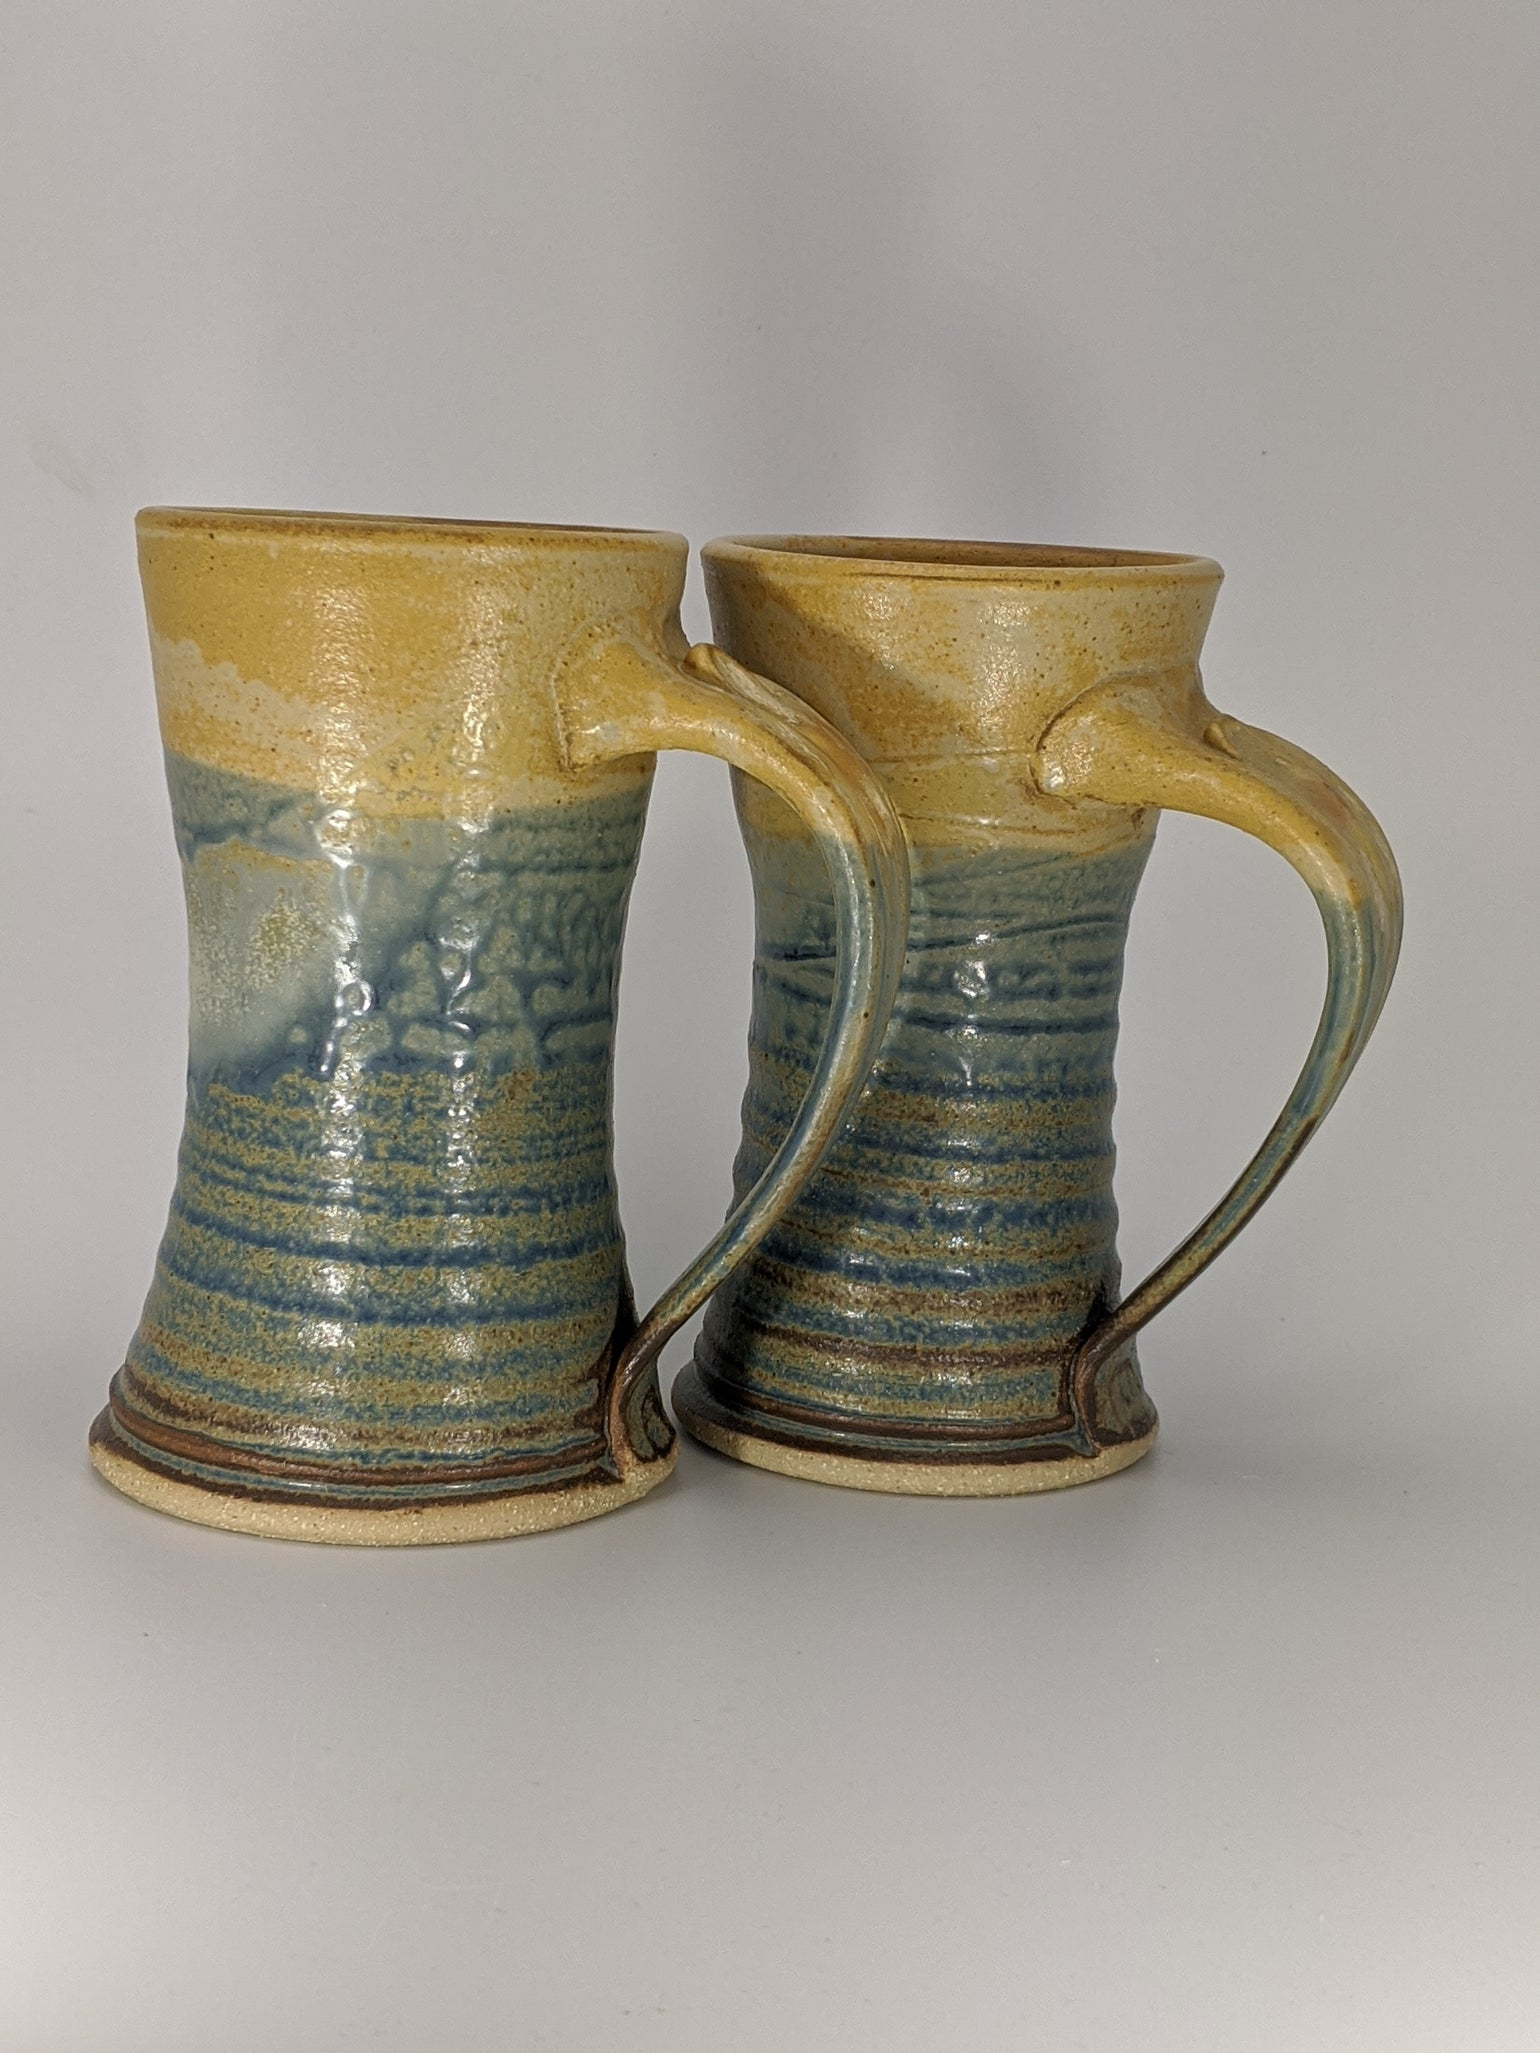 Image of Pair of blue and orange steins